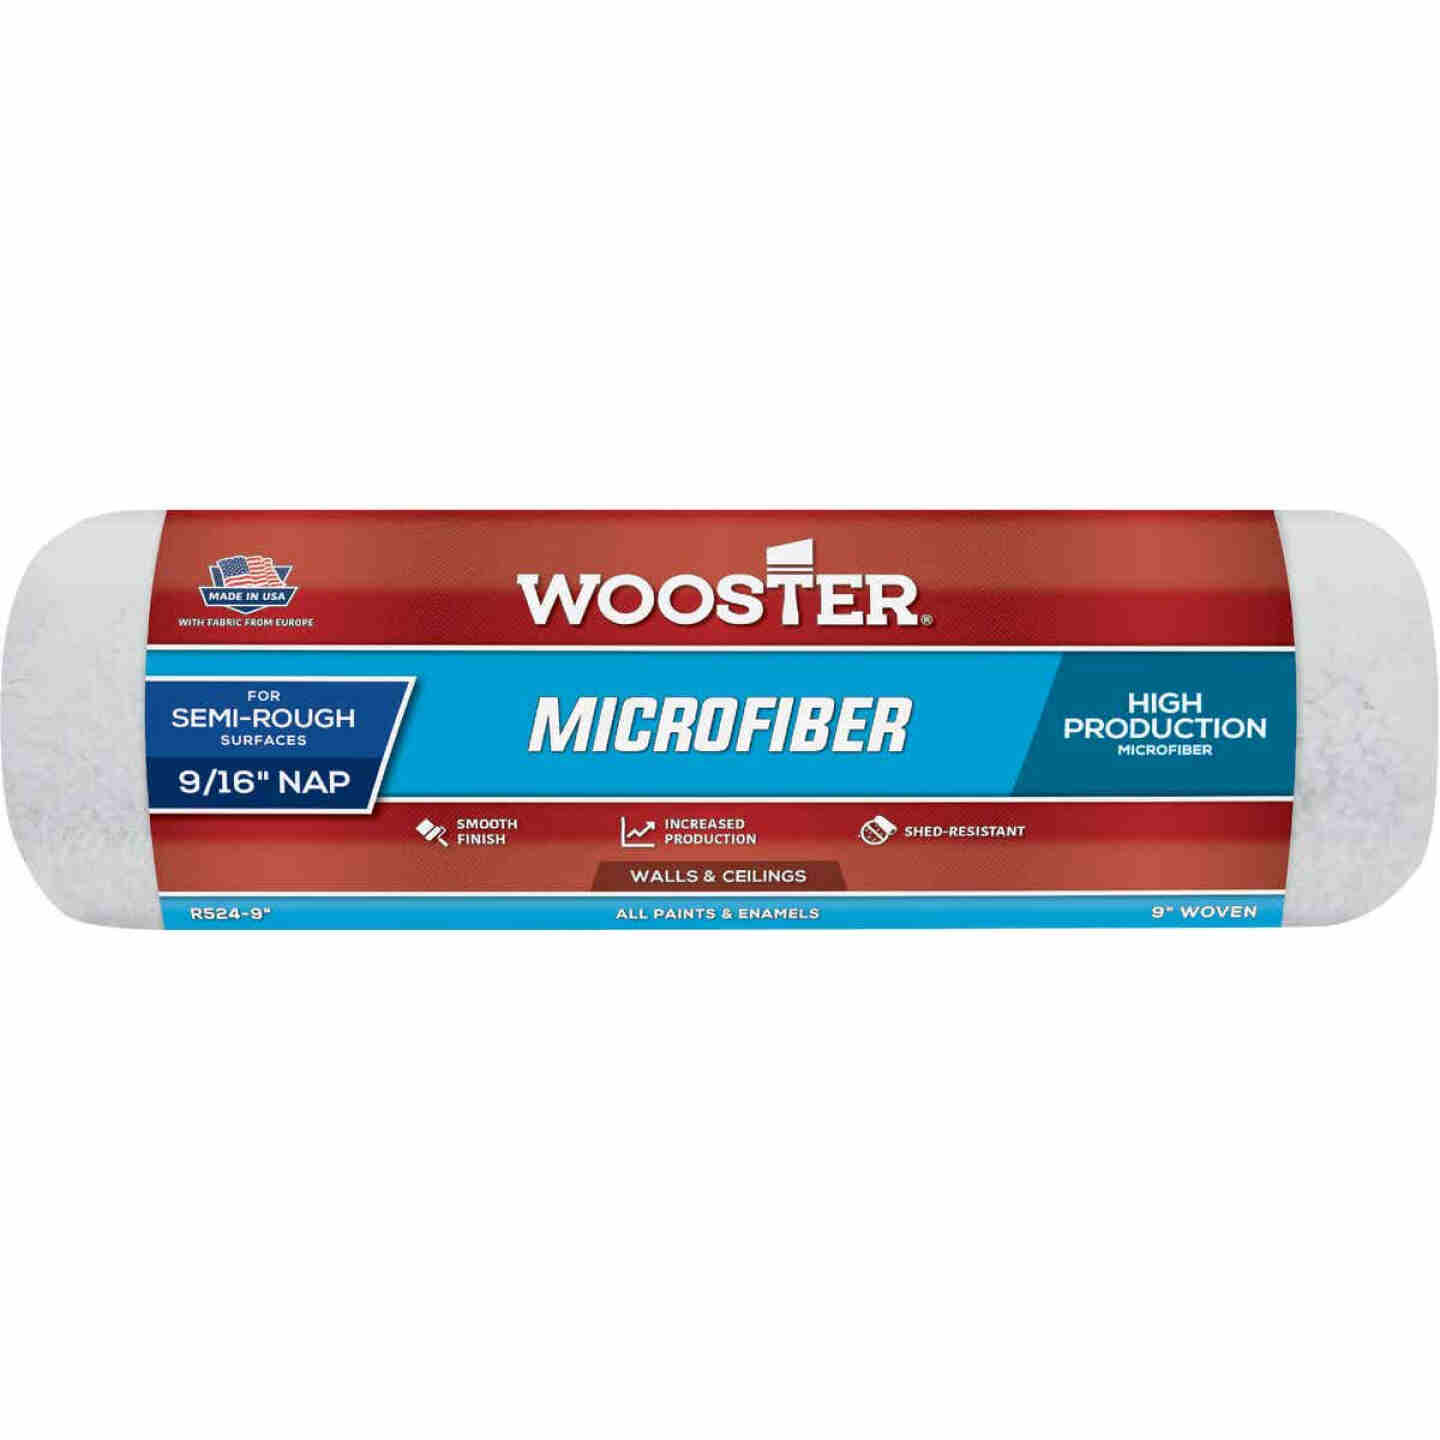 Wooster 9 In. x 9/16 In. Microfiber Roller Cover Image 1